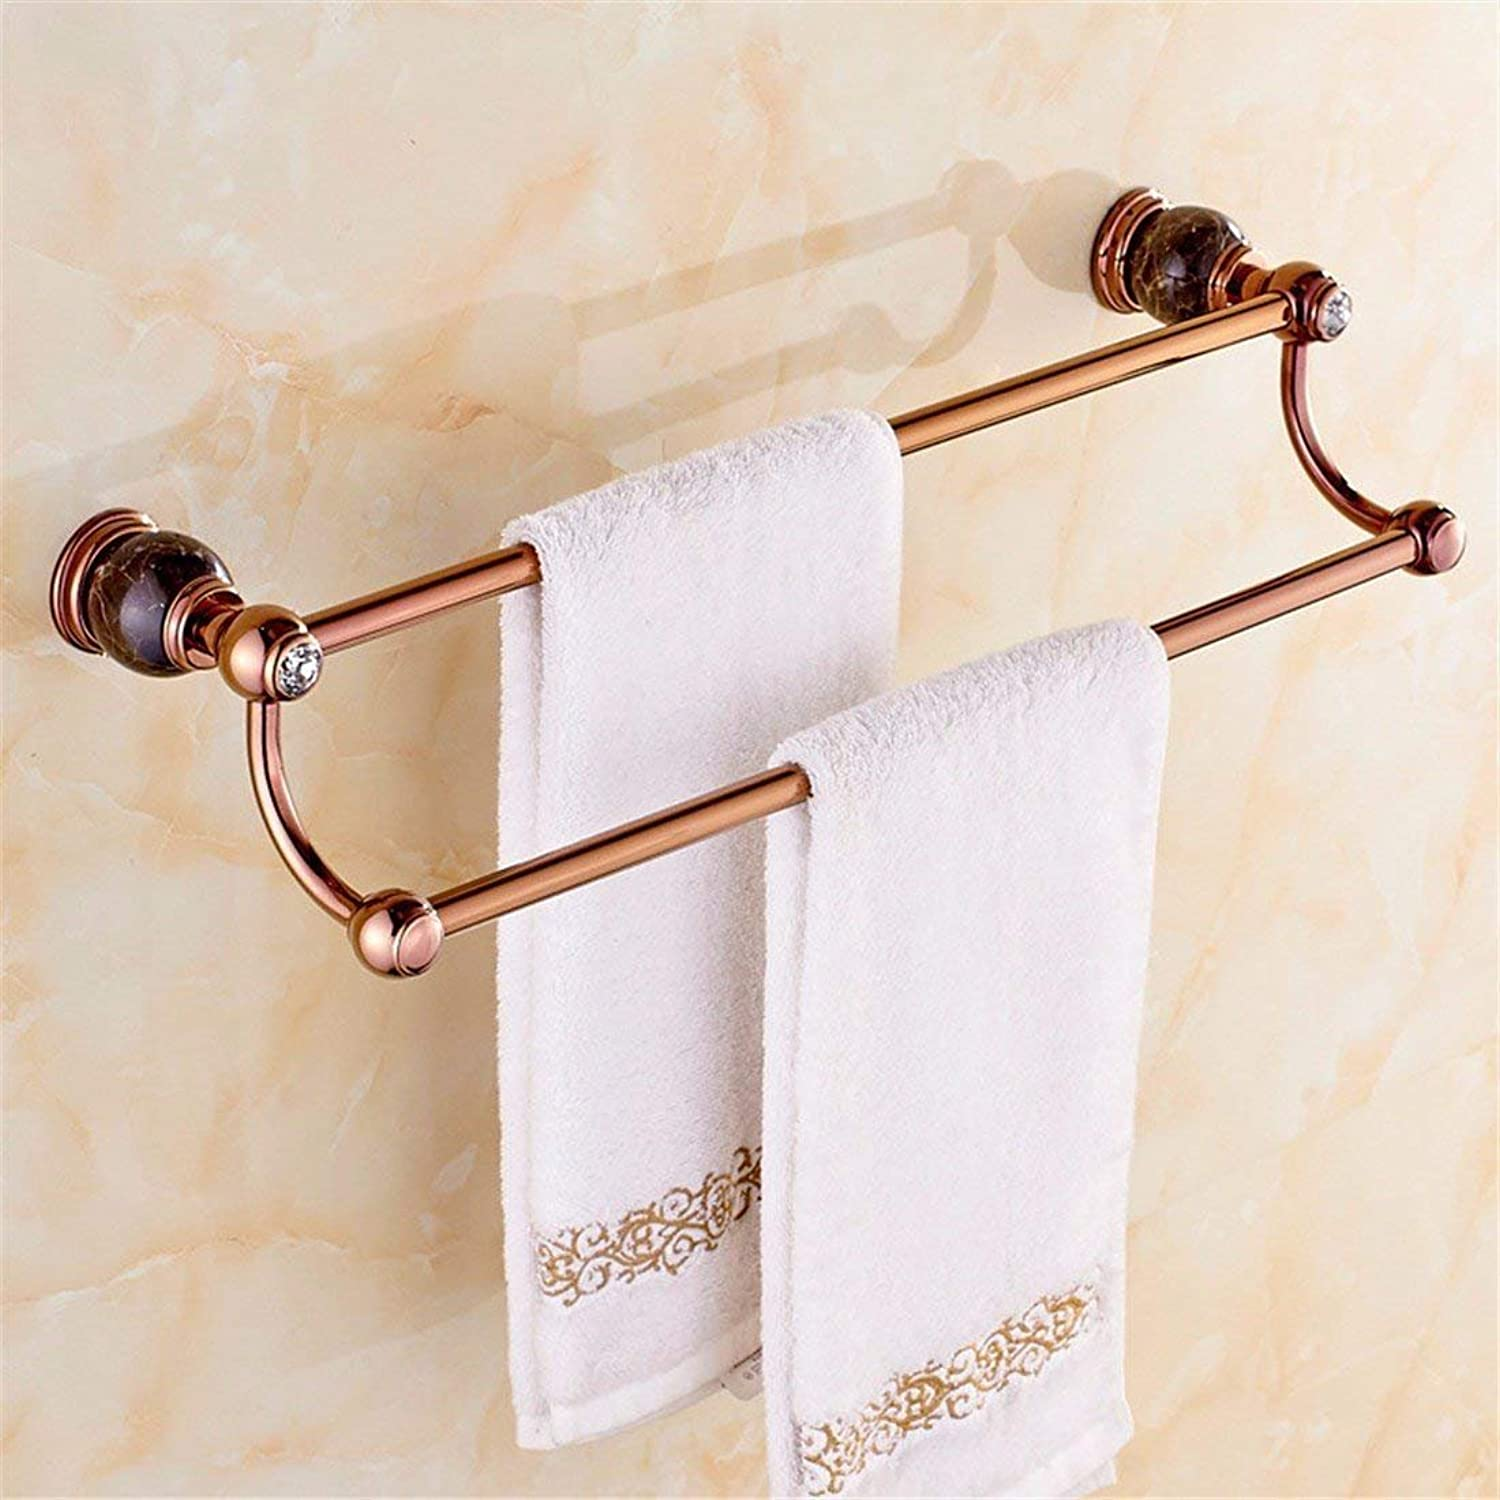 The Copper Base Christmas pink of gold in Black Marble Diamond Set Bathroom Accessories Toilet Brush Paper Holder,Double Pole